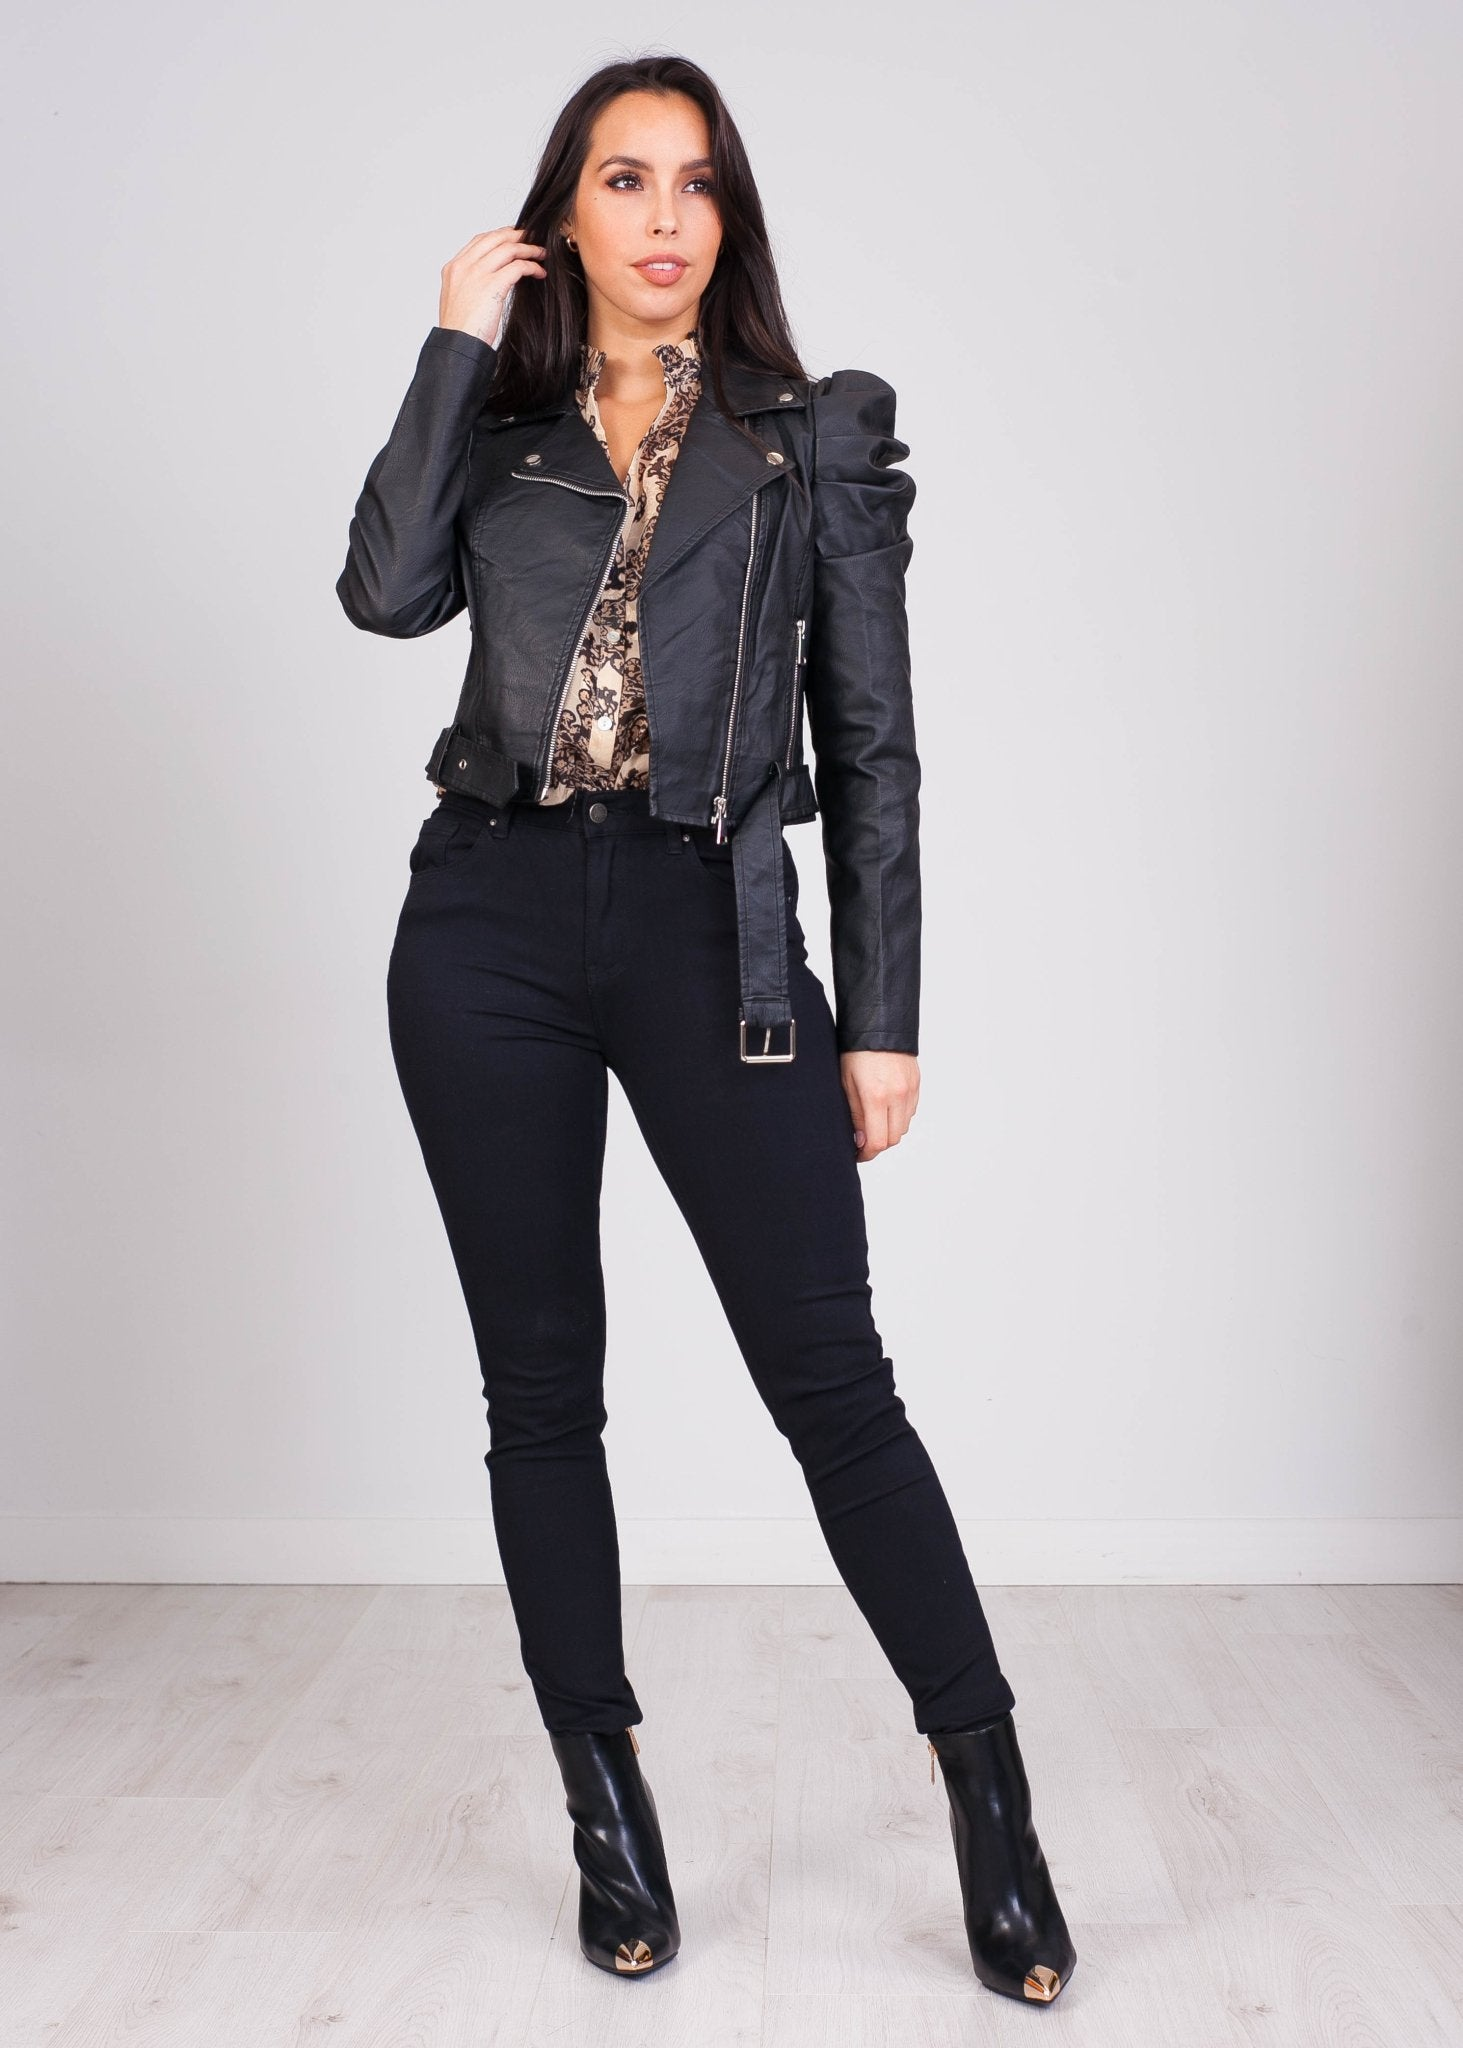 Rose Black Leather Jacket Shoulder Detail - The Walk in Wardrobe